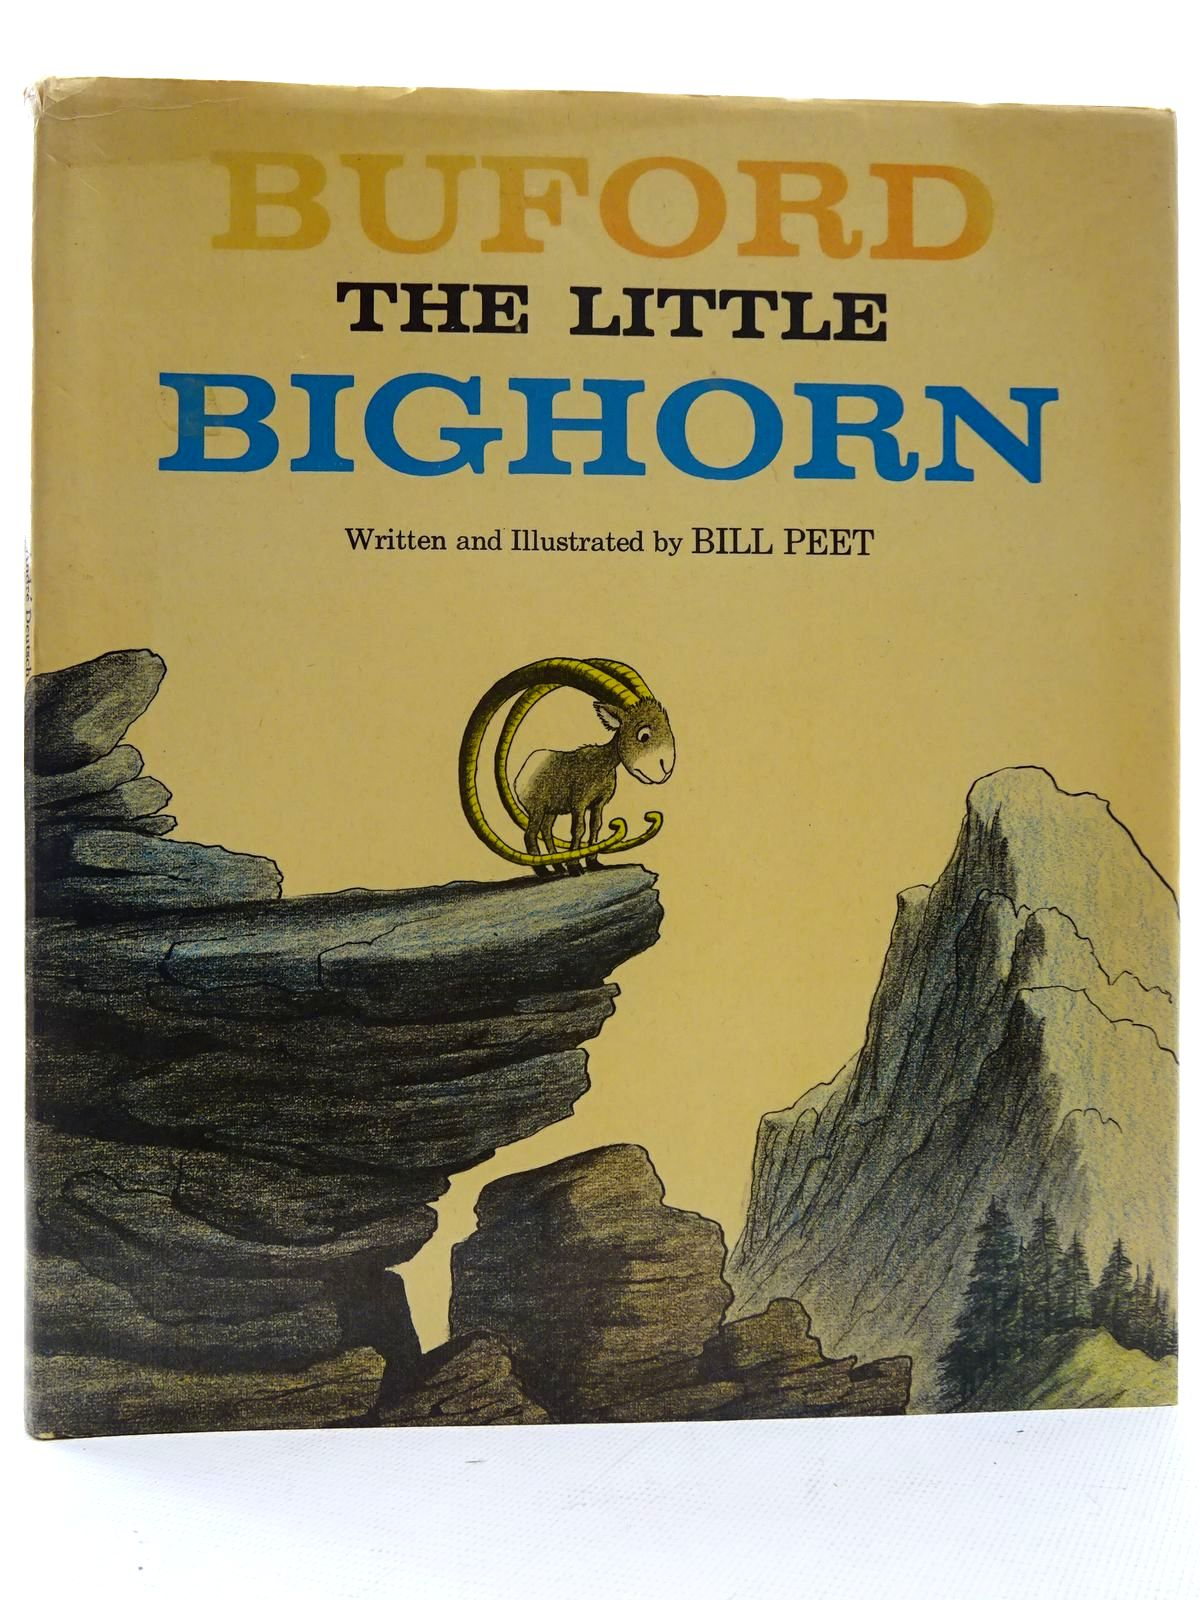 Photo of BUFORD THE LITTLE BIGHORN written by Peet, Bill illustrated by Peet, Bill published by Andre Deutsch (STOCK CODE: 2126024)  for sale by Stella & Rose's Books